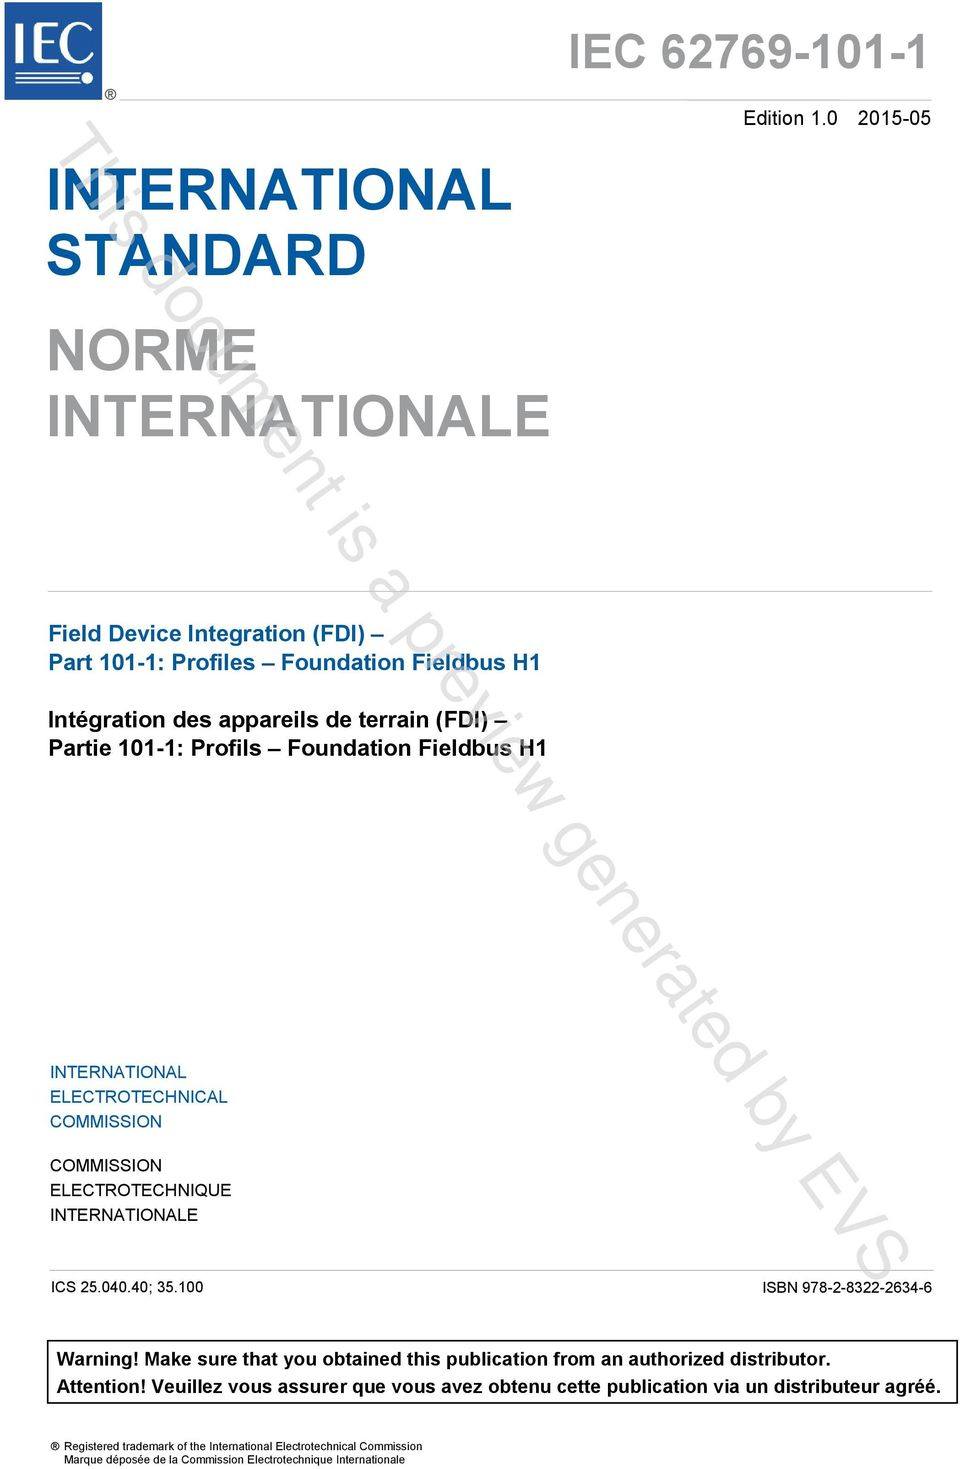 INTERNATIONAL ELECTROTECHNICAL COMMISSION COMMISSION ELECTROTECHNIQUE INTERNATIONALE ICS 25.040.40; 35.100 ISBN 978-2-8322-2634-6 Warning!